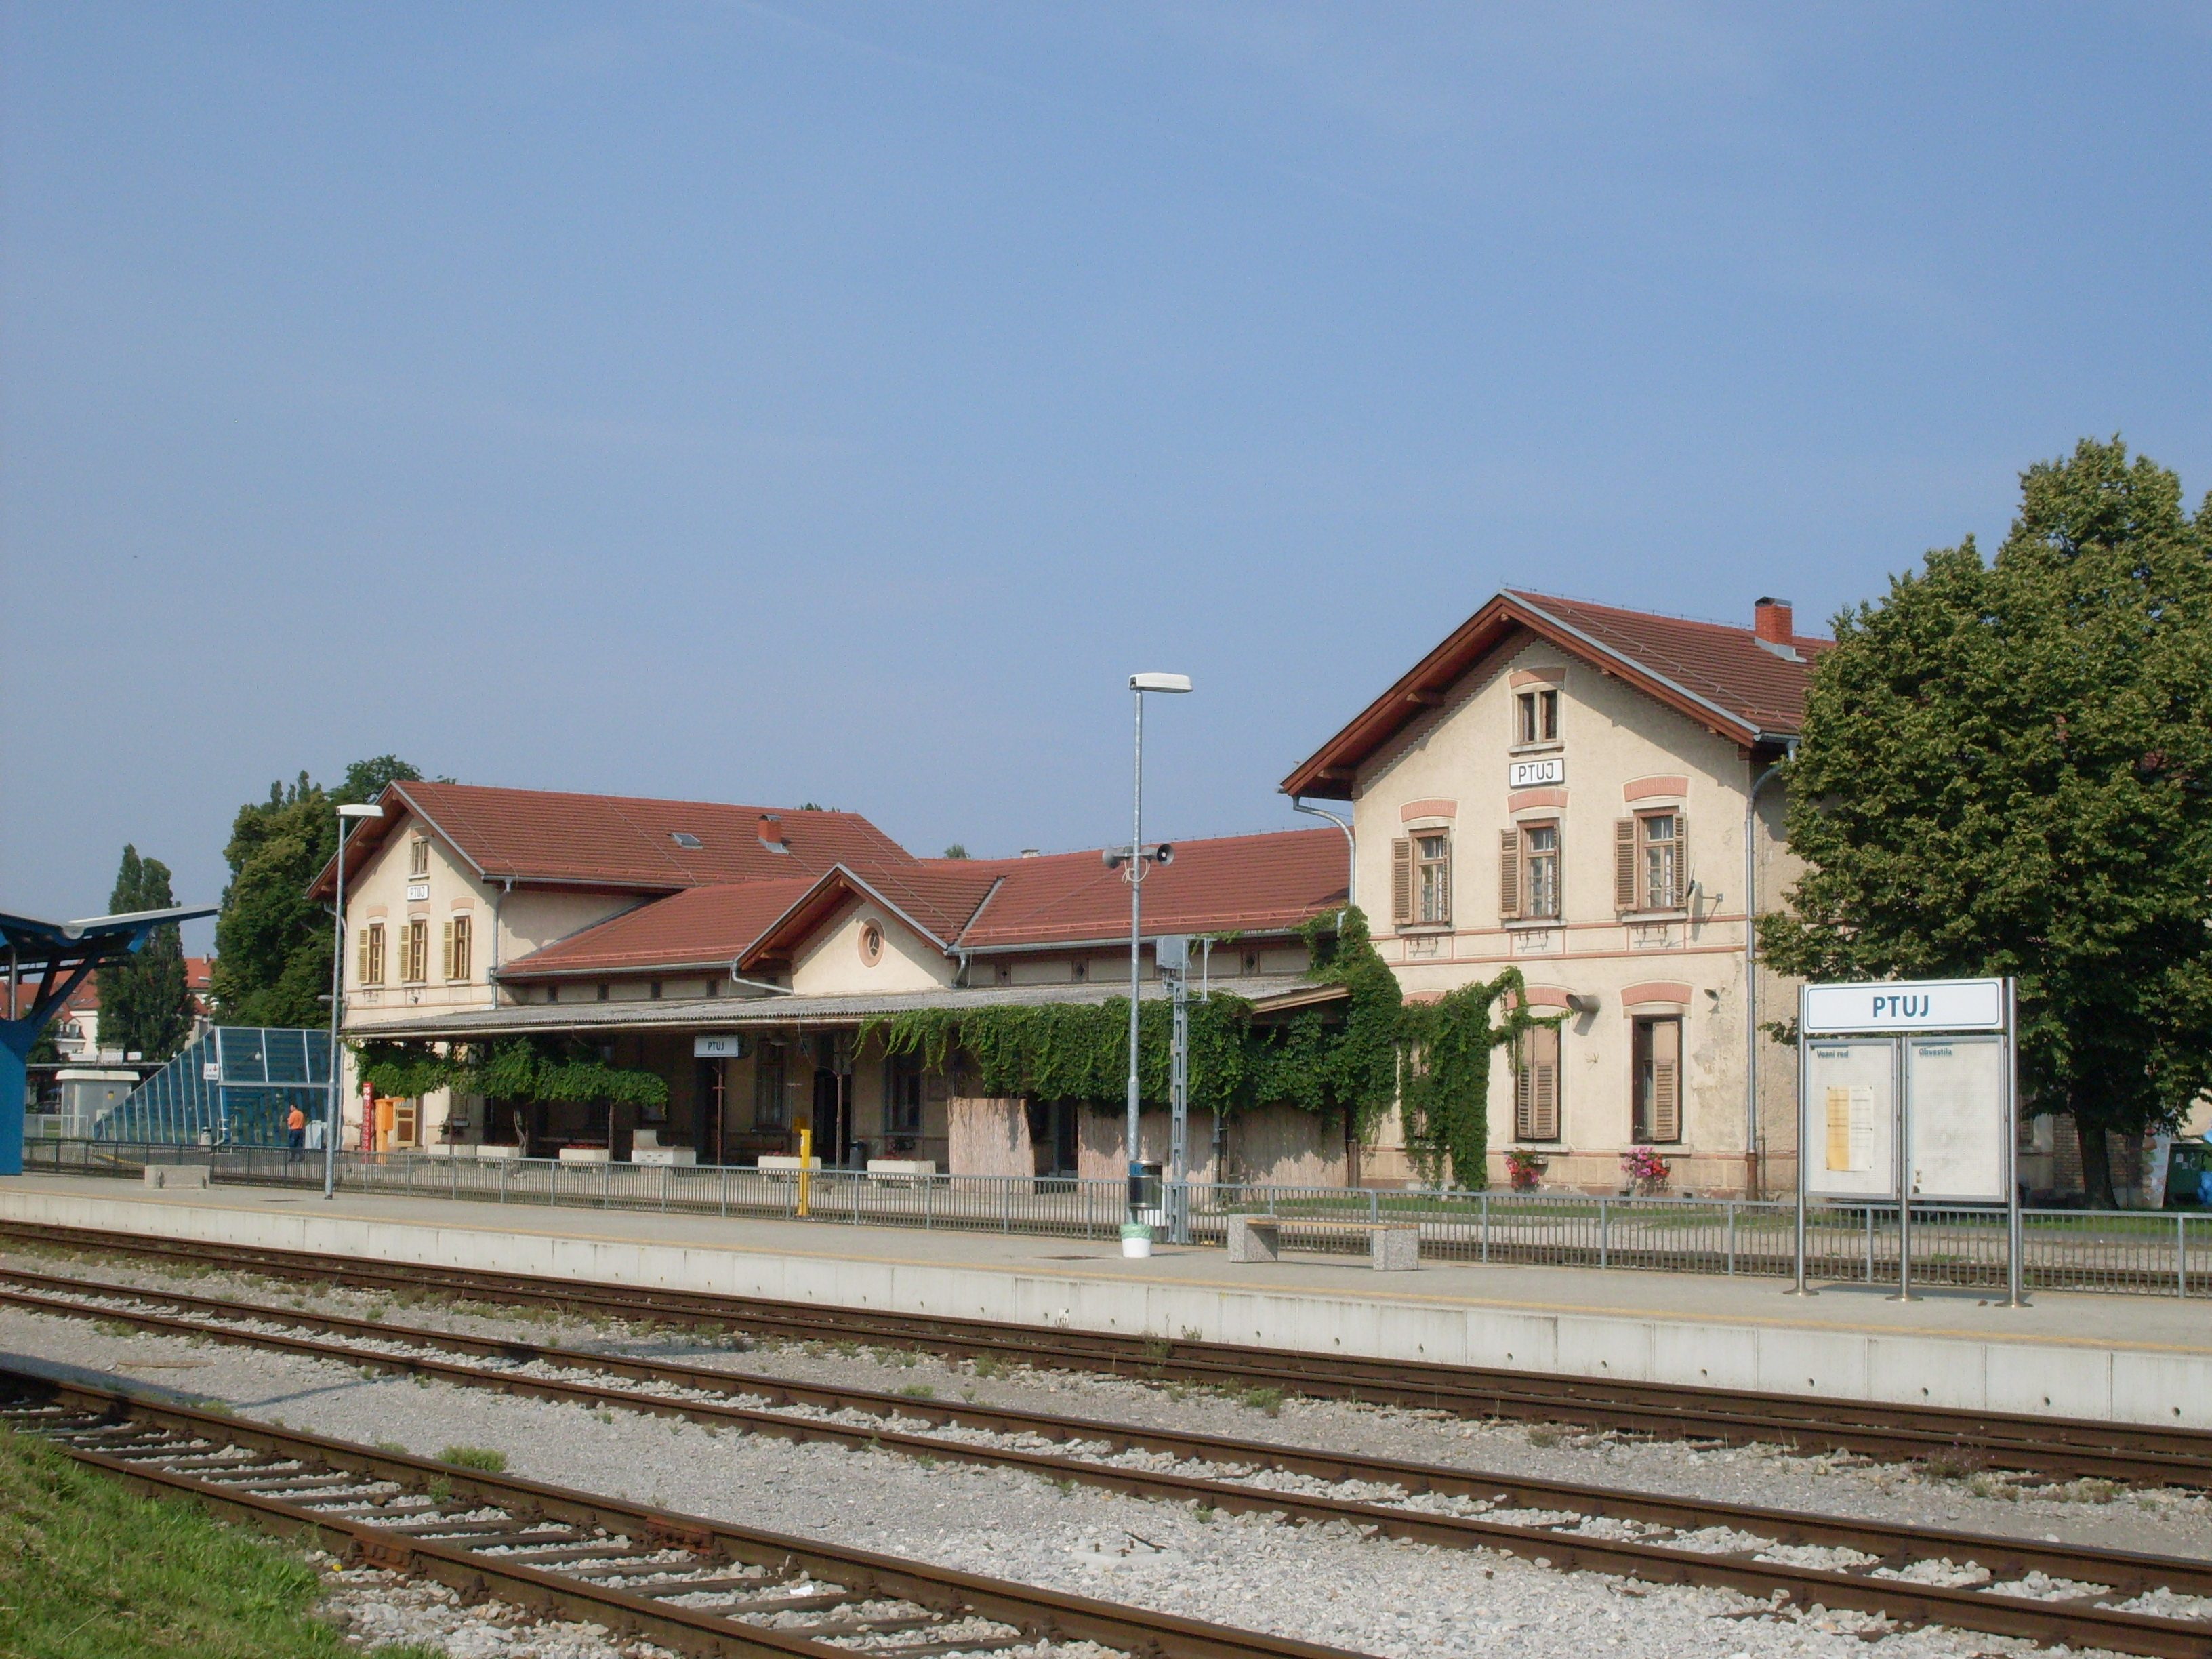 https://upload.wikimedia.org/wikipedia/commons/6/69/Ptuj-train_station.jpg